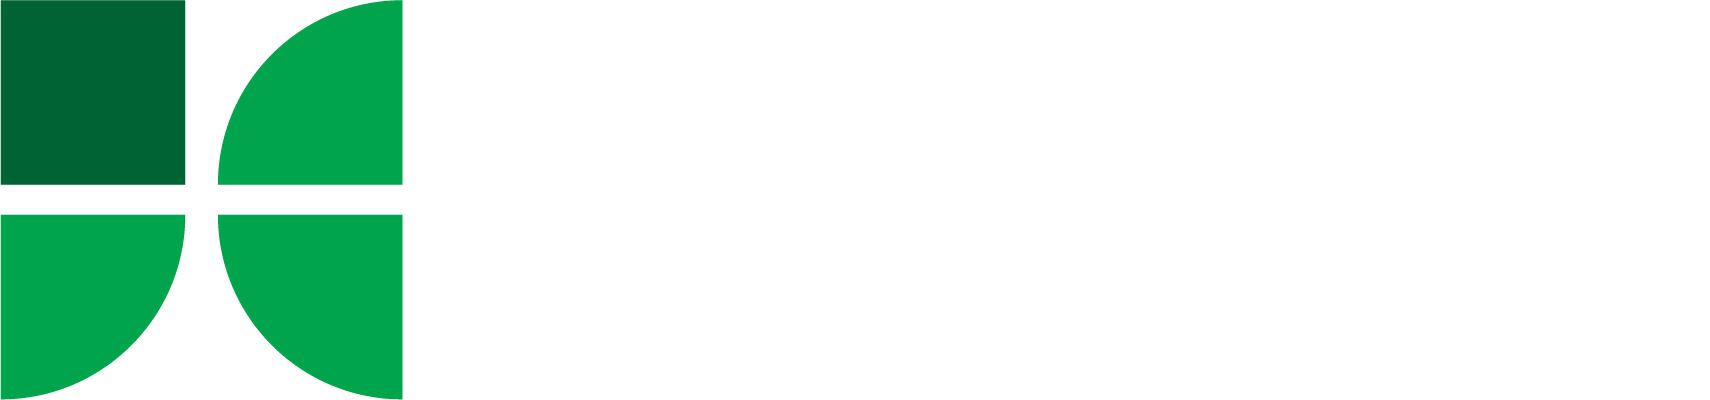 JC Jones Advisory Services Logo Icon White Text Horizontal